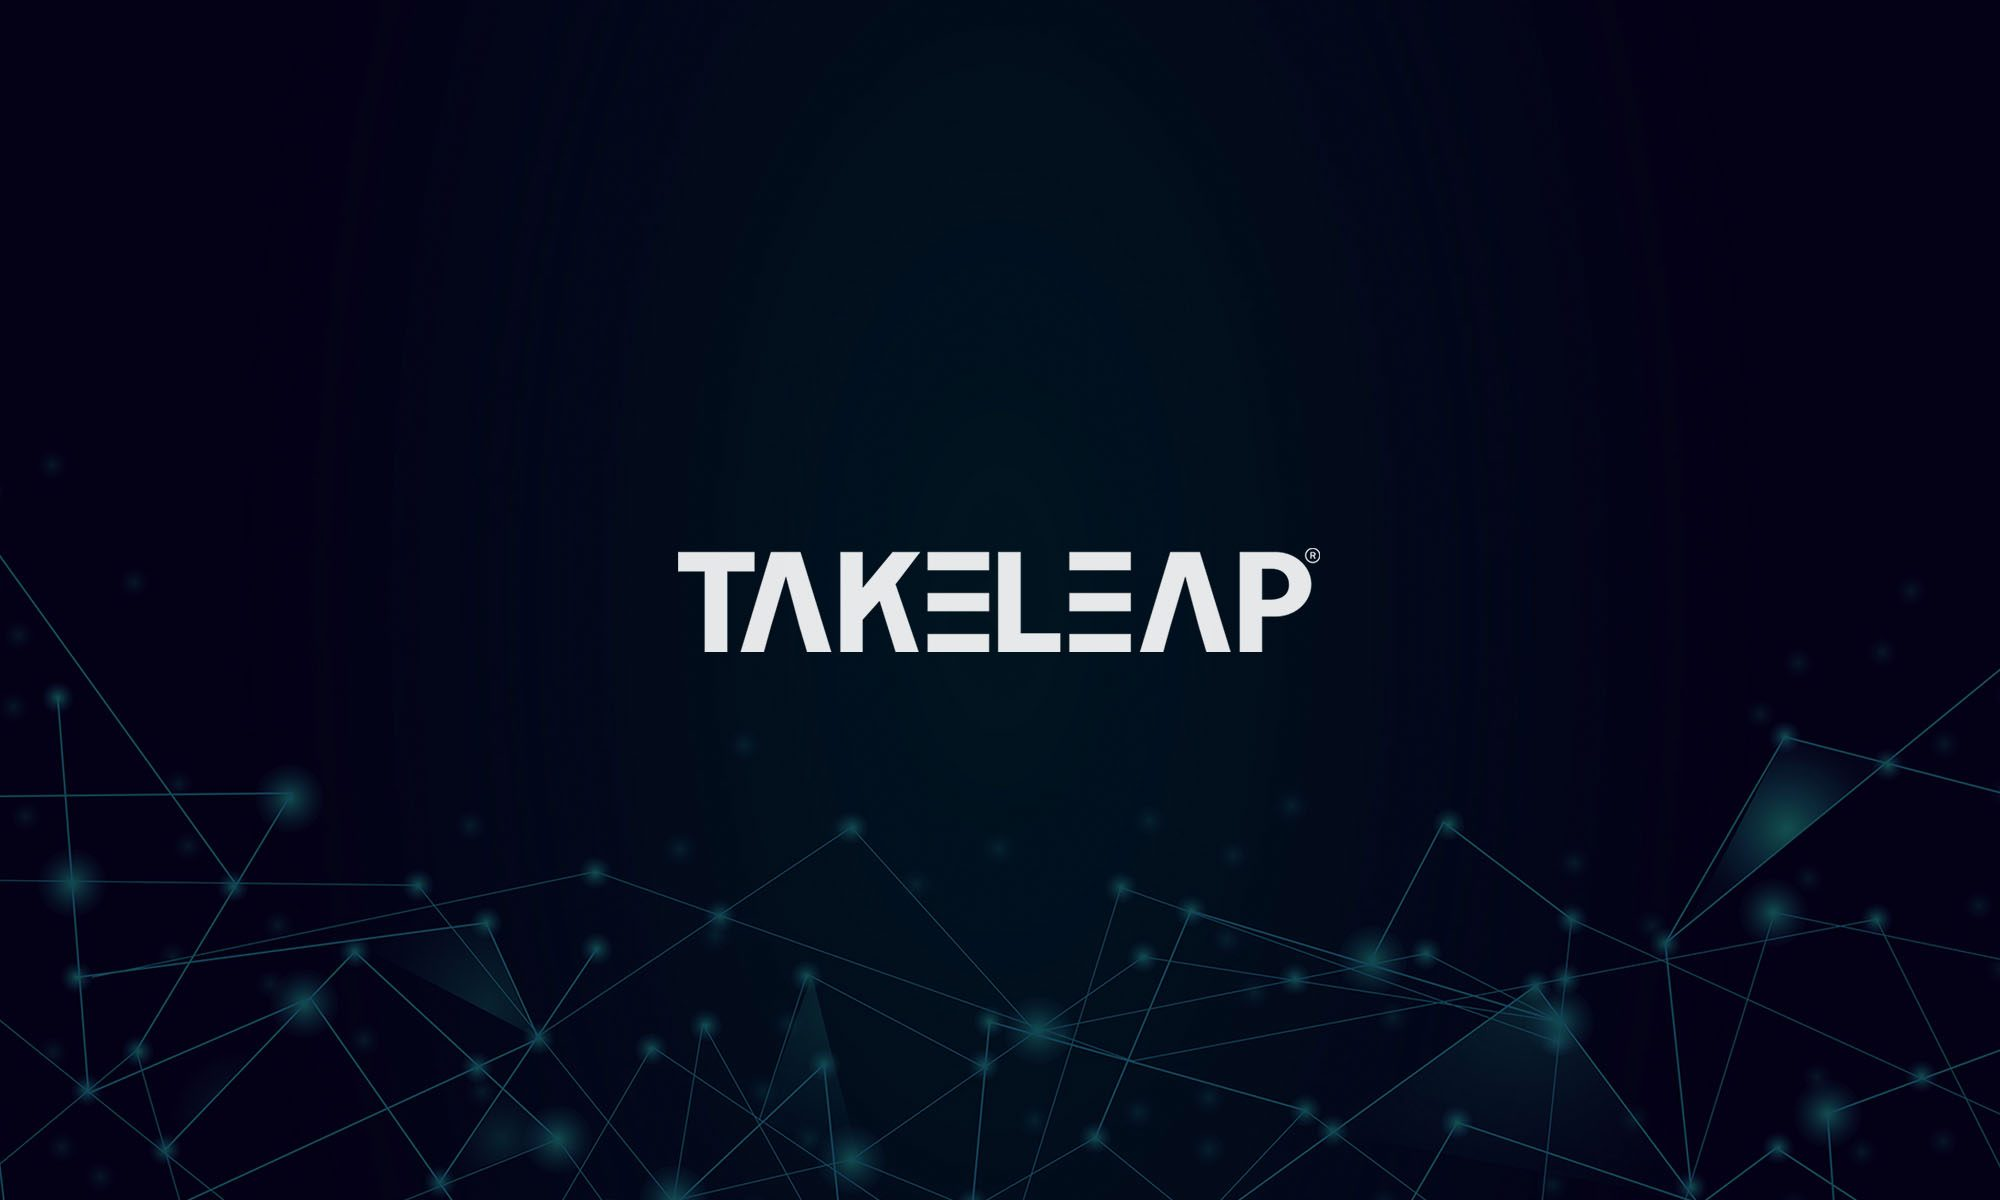 TAKELEAP - Machine Learning company logo